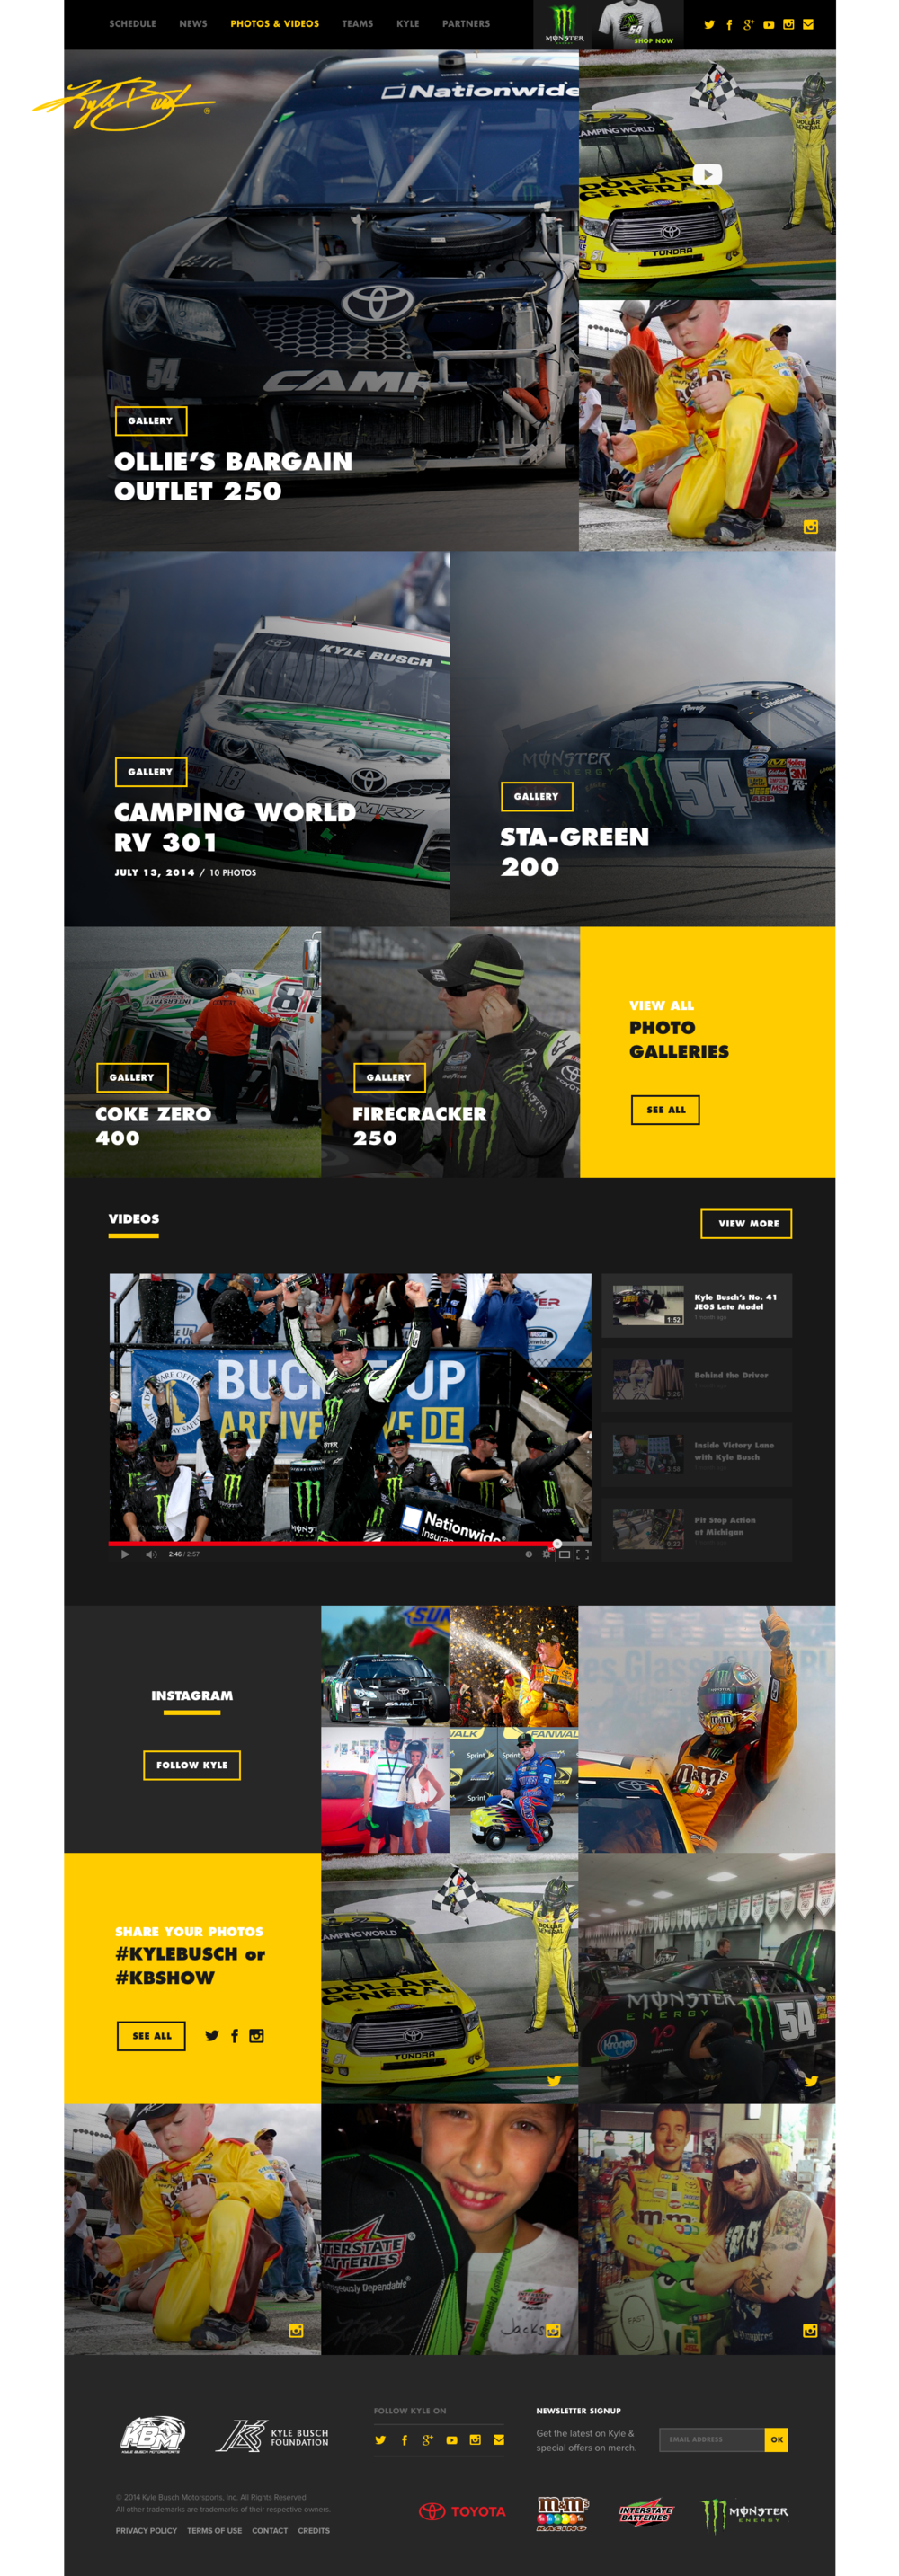 4.0-KyleBusch-PhotosVideo-Camping-Hover.png